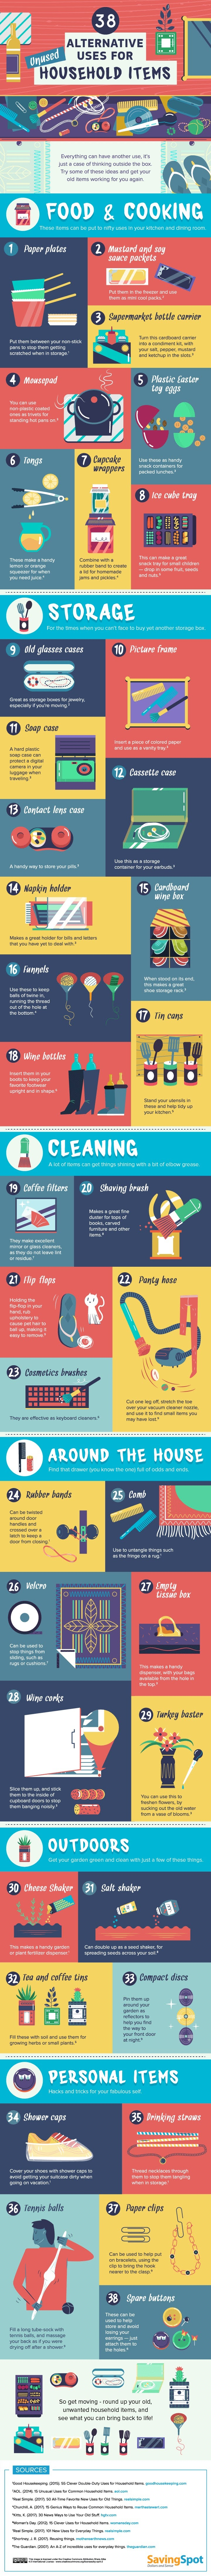 38-alternative-uses-for-unused-household-items-infographic